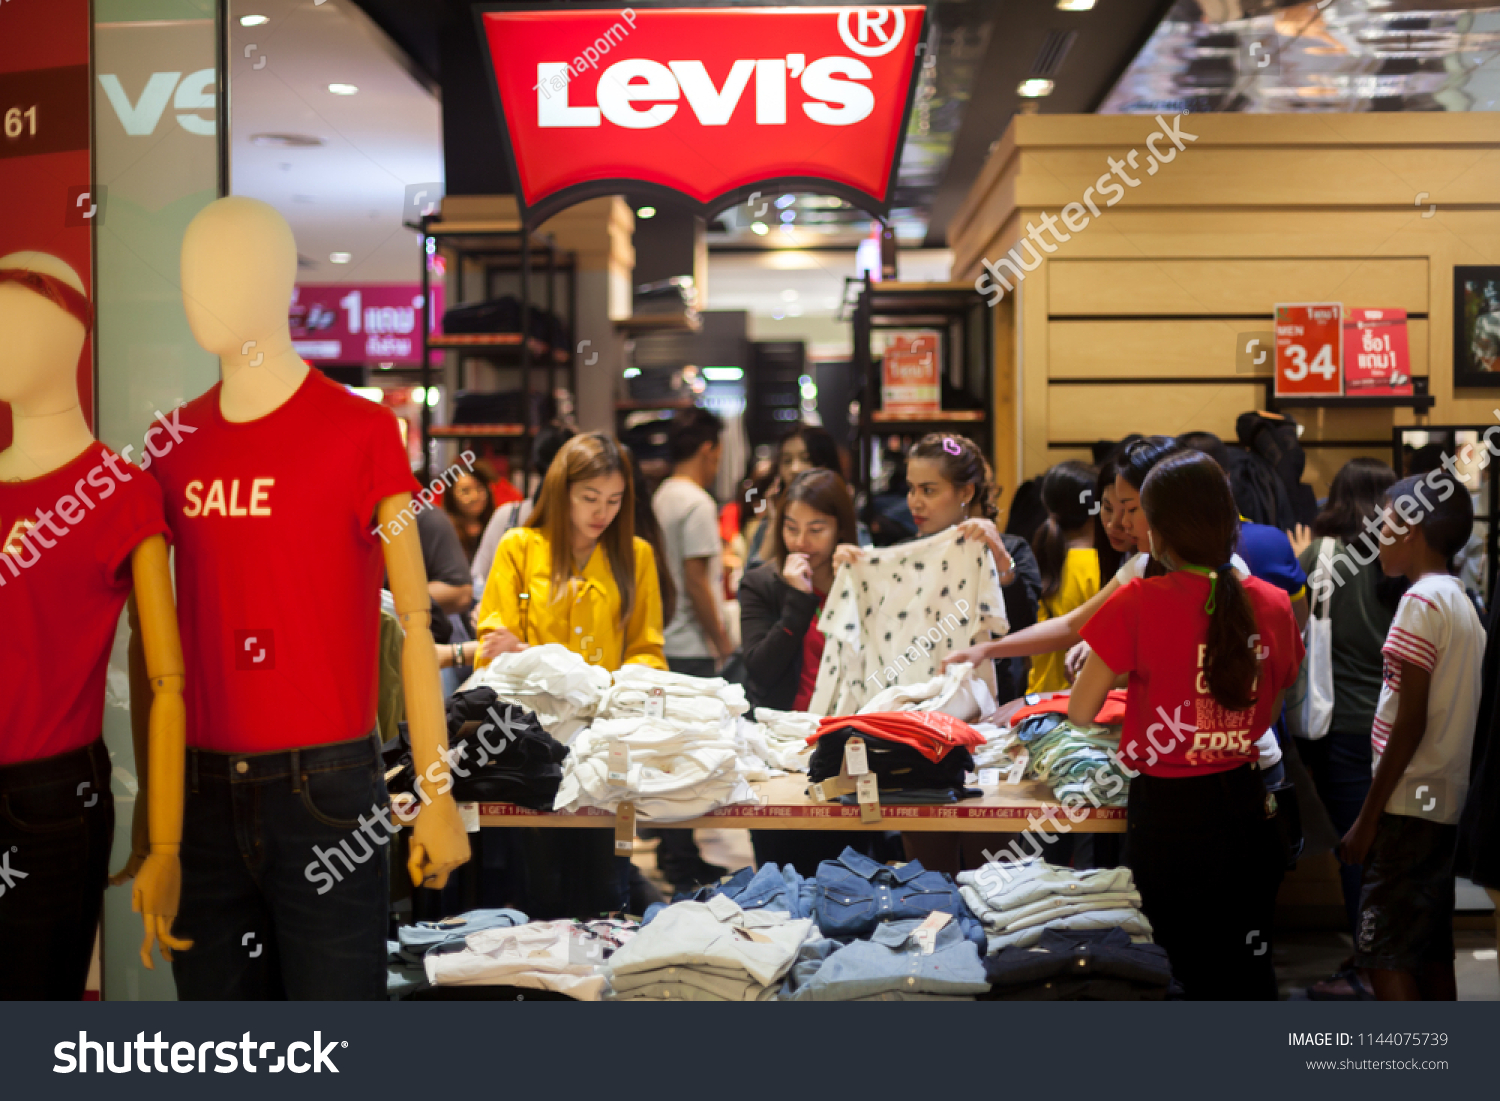 cb7ad68f0f Khonkae Th 27 June 2018 People Stock Photo (Edit Now) 1144075739